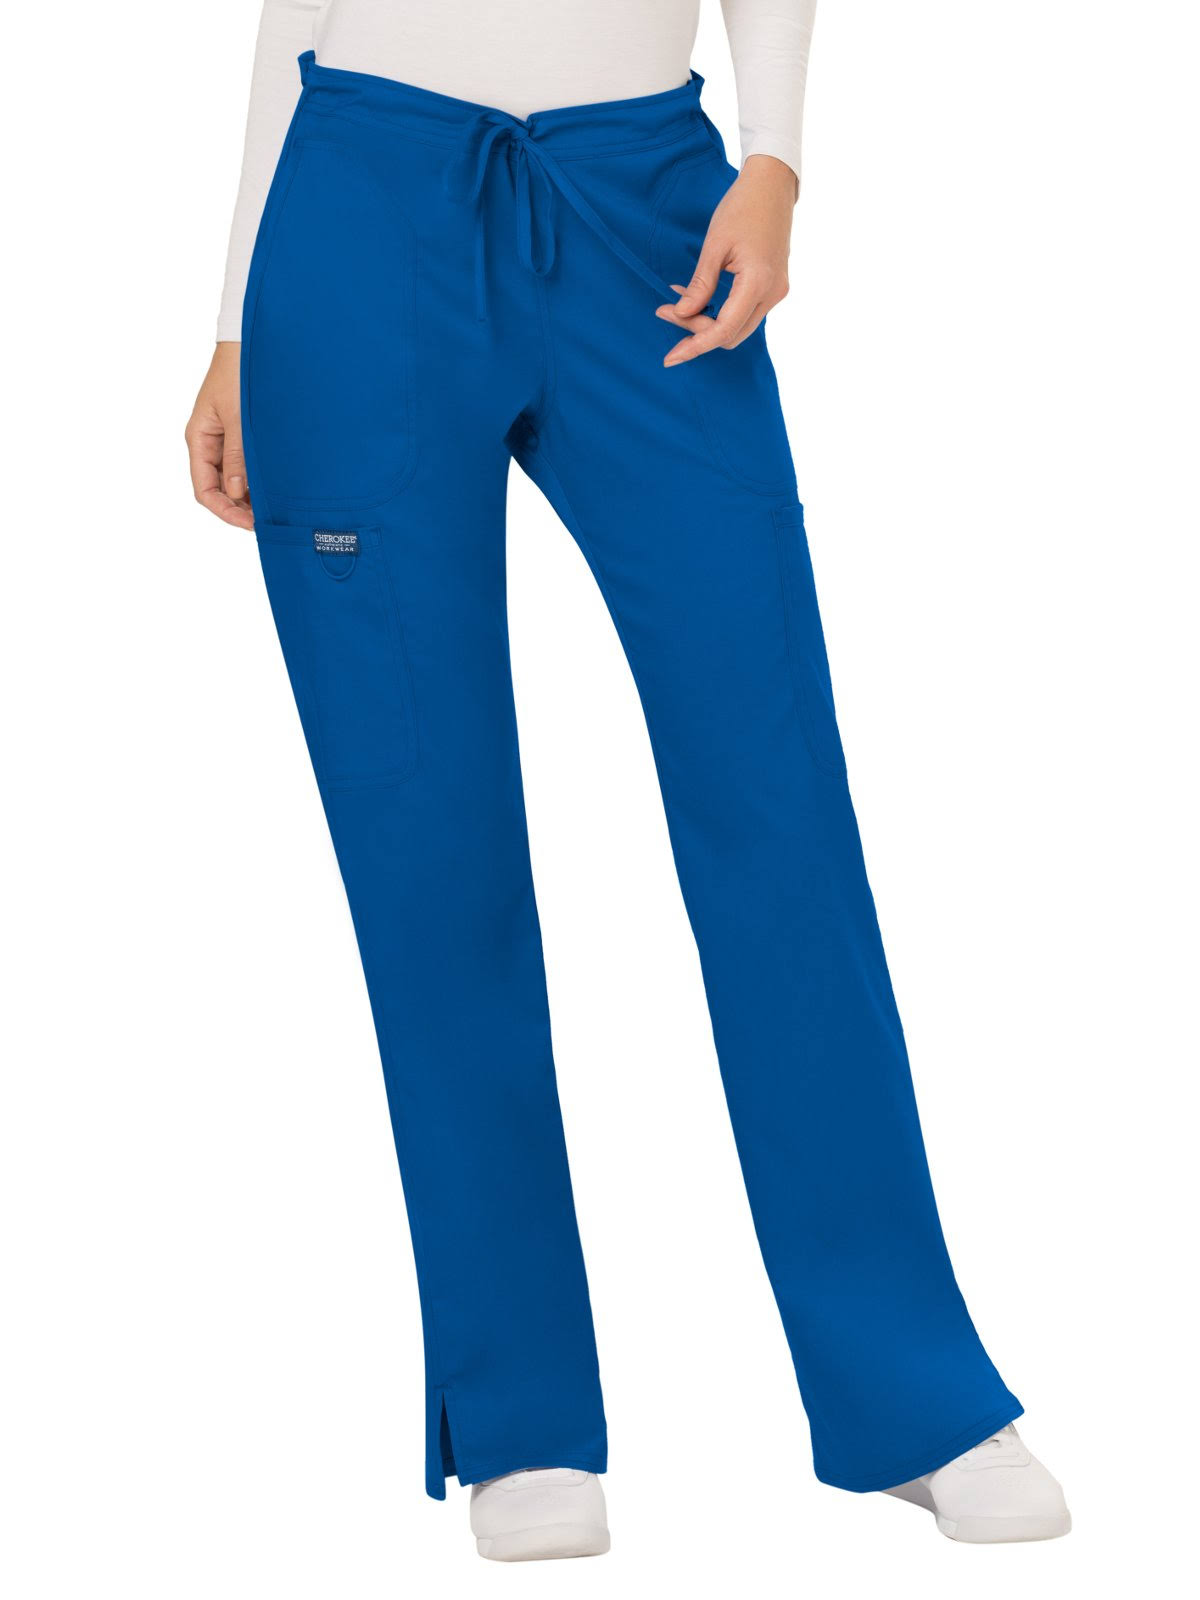 Cherokee Women's Workwear Revolution Drawstring Cargo Scrub Pant - Royal